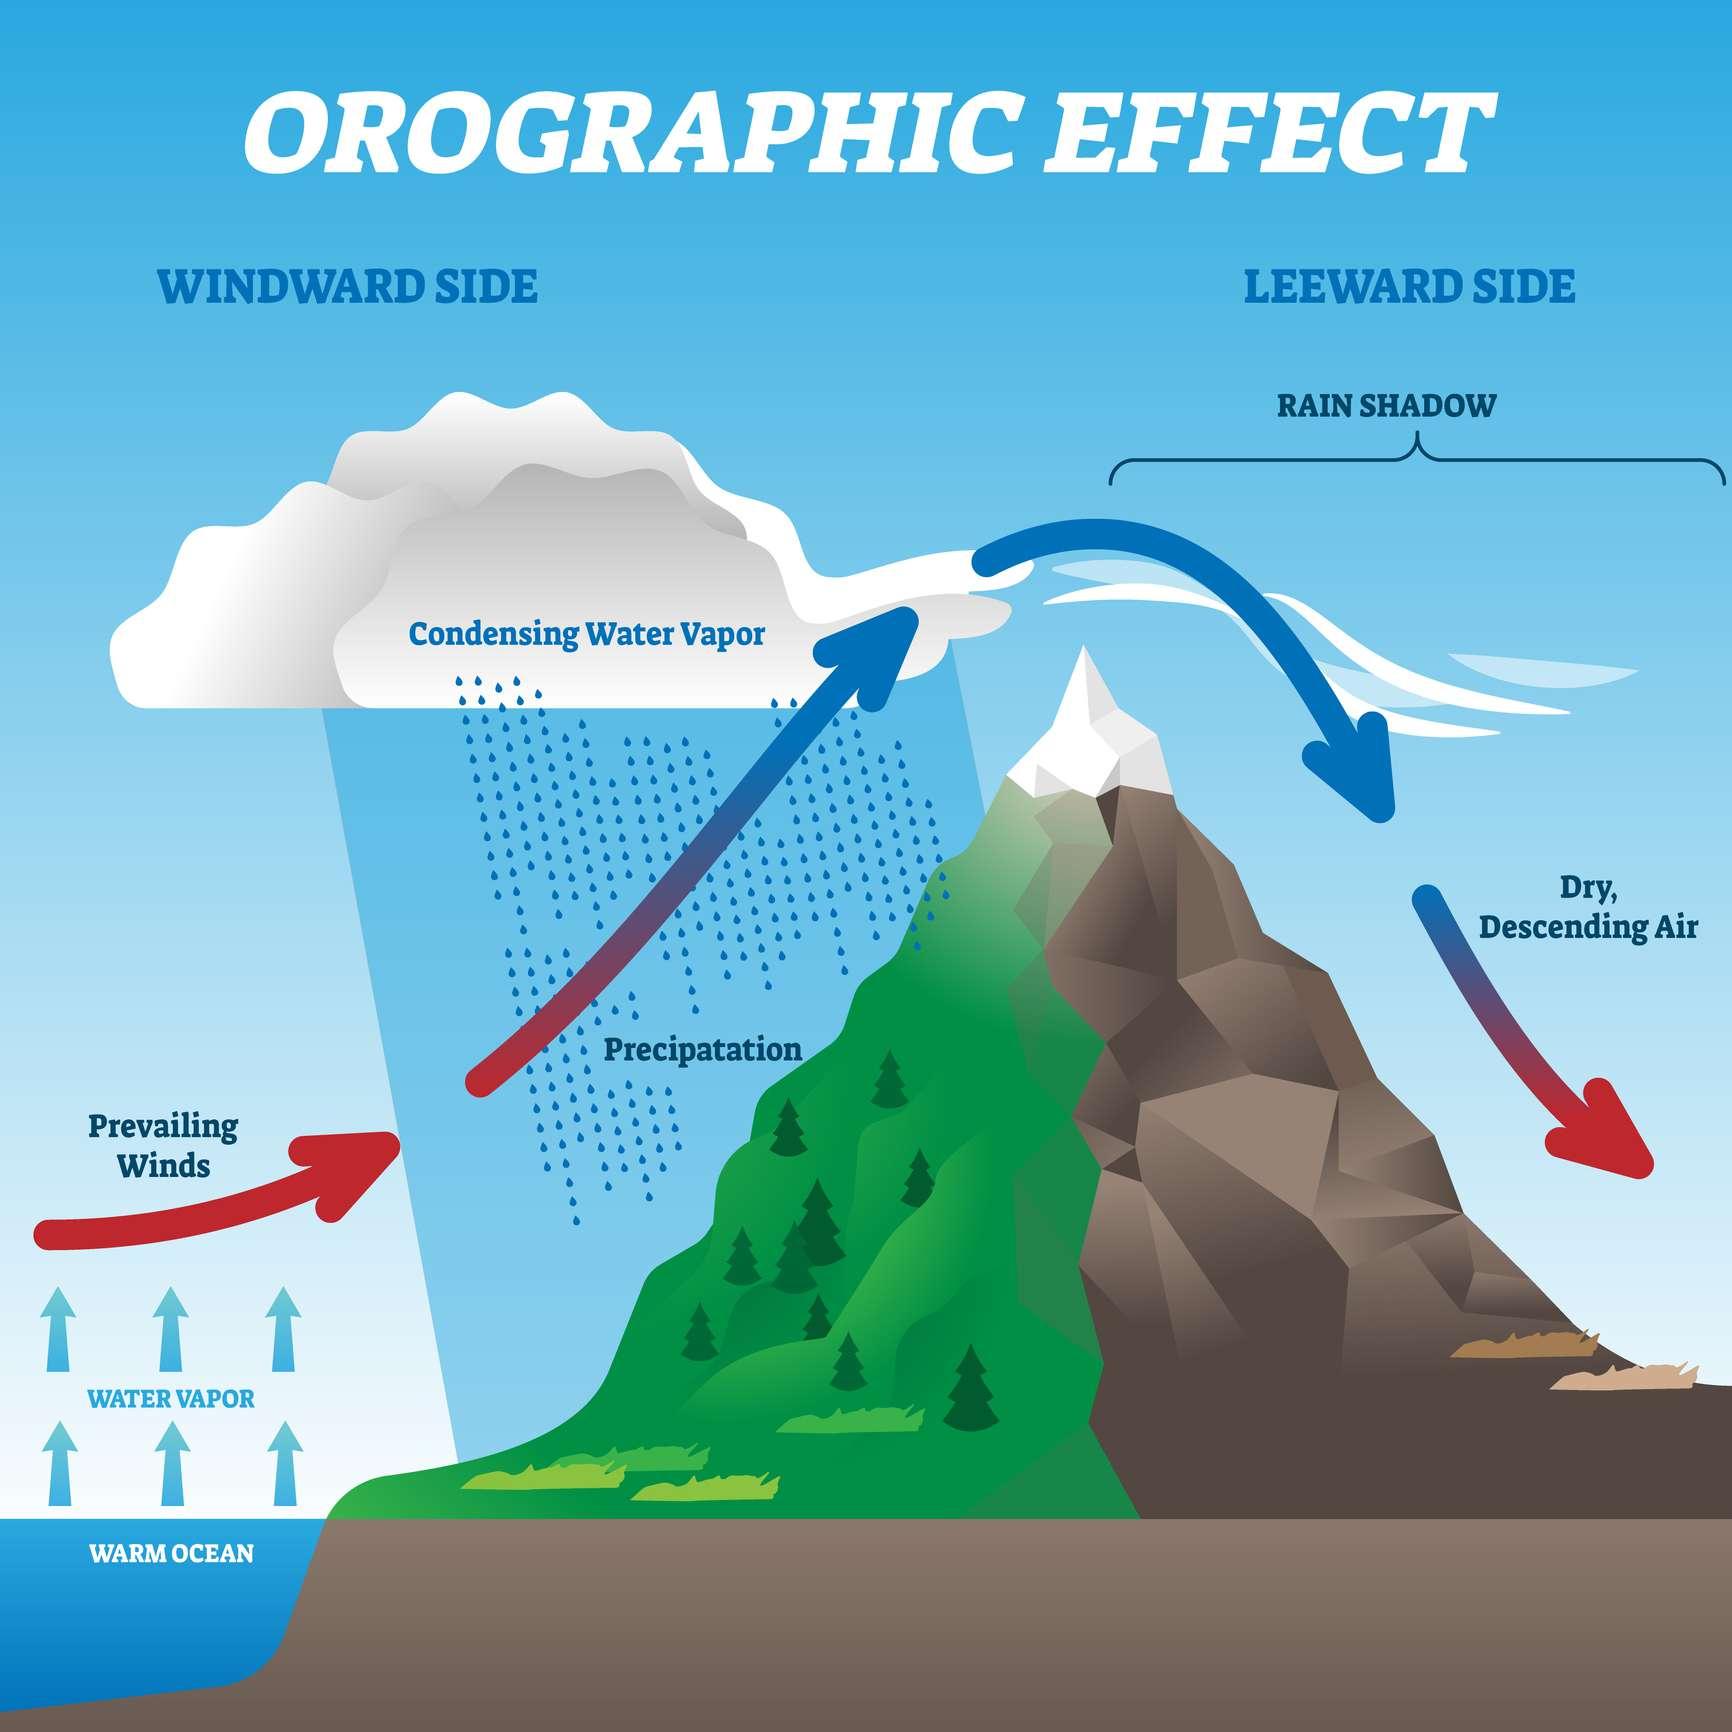 An infographic depicting how orographic lift can produce rain shadows.